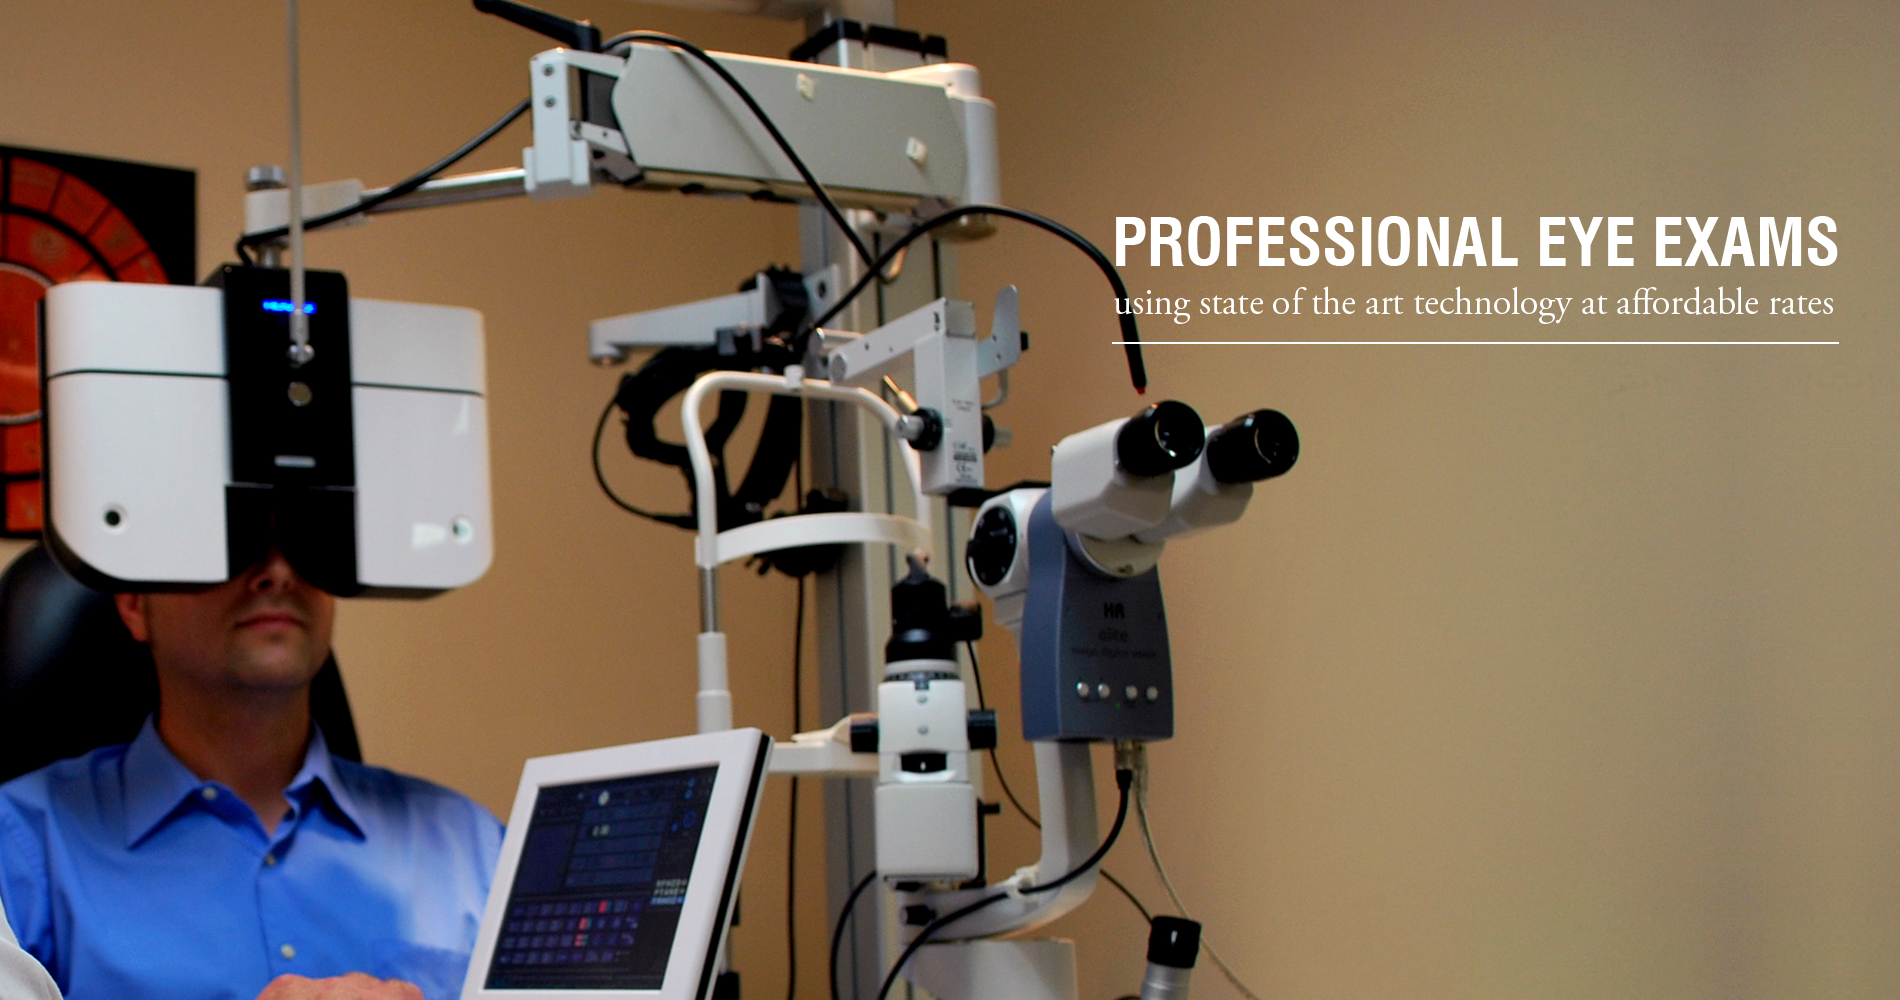 traverse city, michigan eye care services